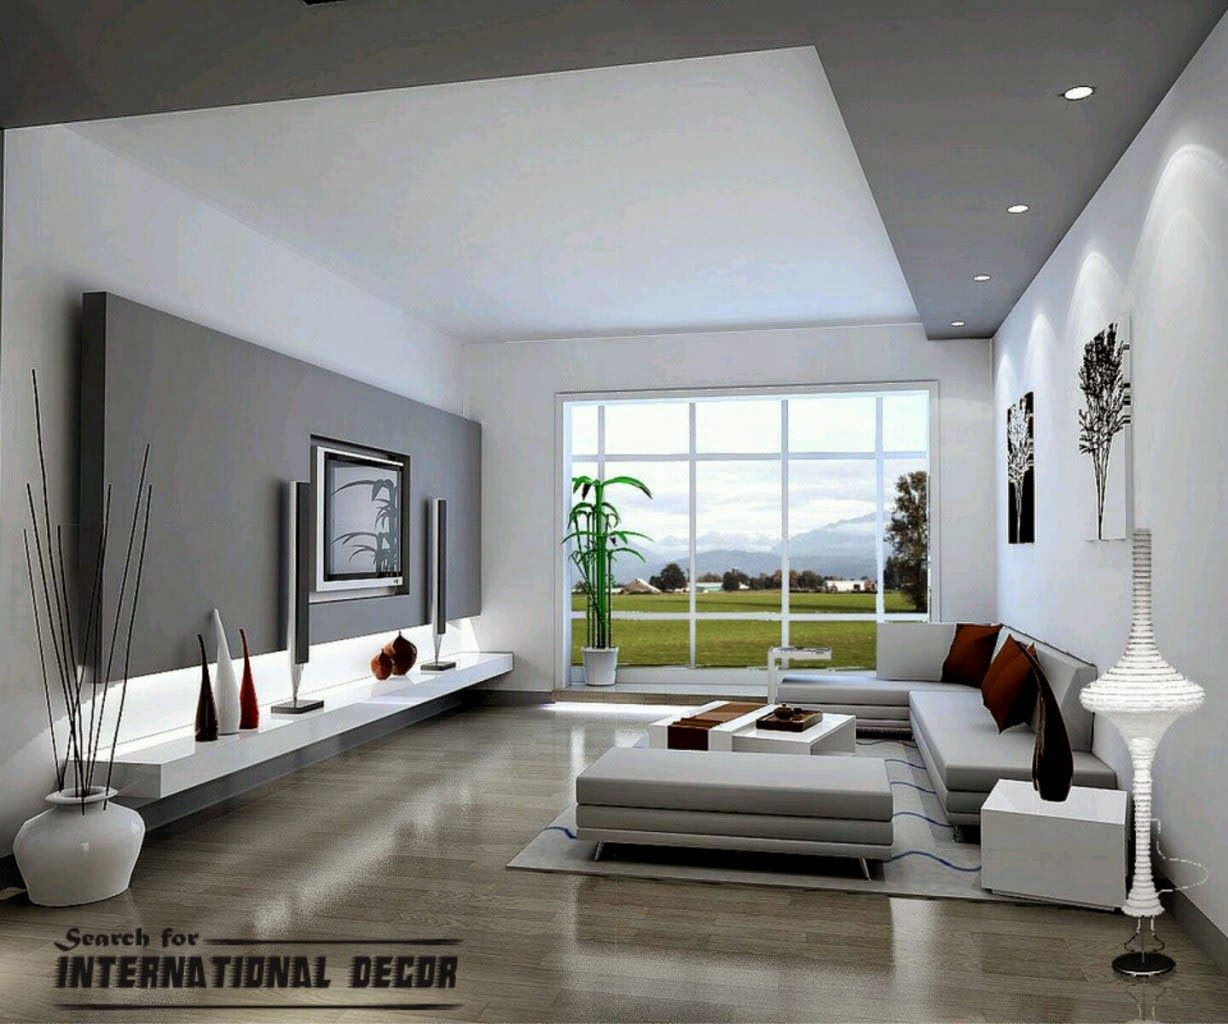 Modern living room decor and design paint part of ceiling to match silver travertine wall